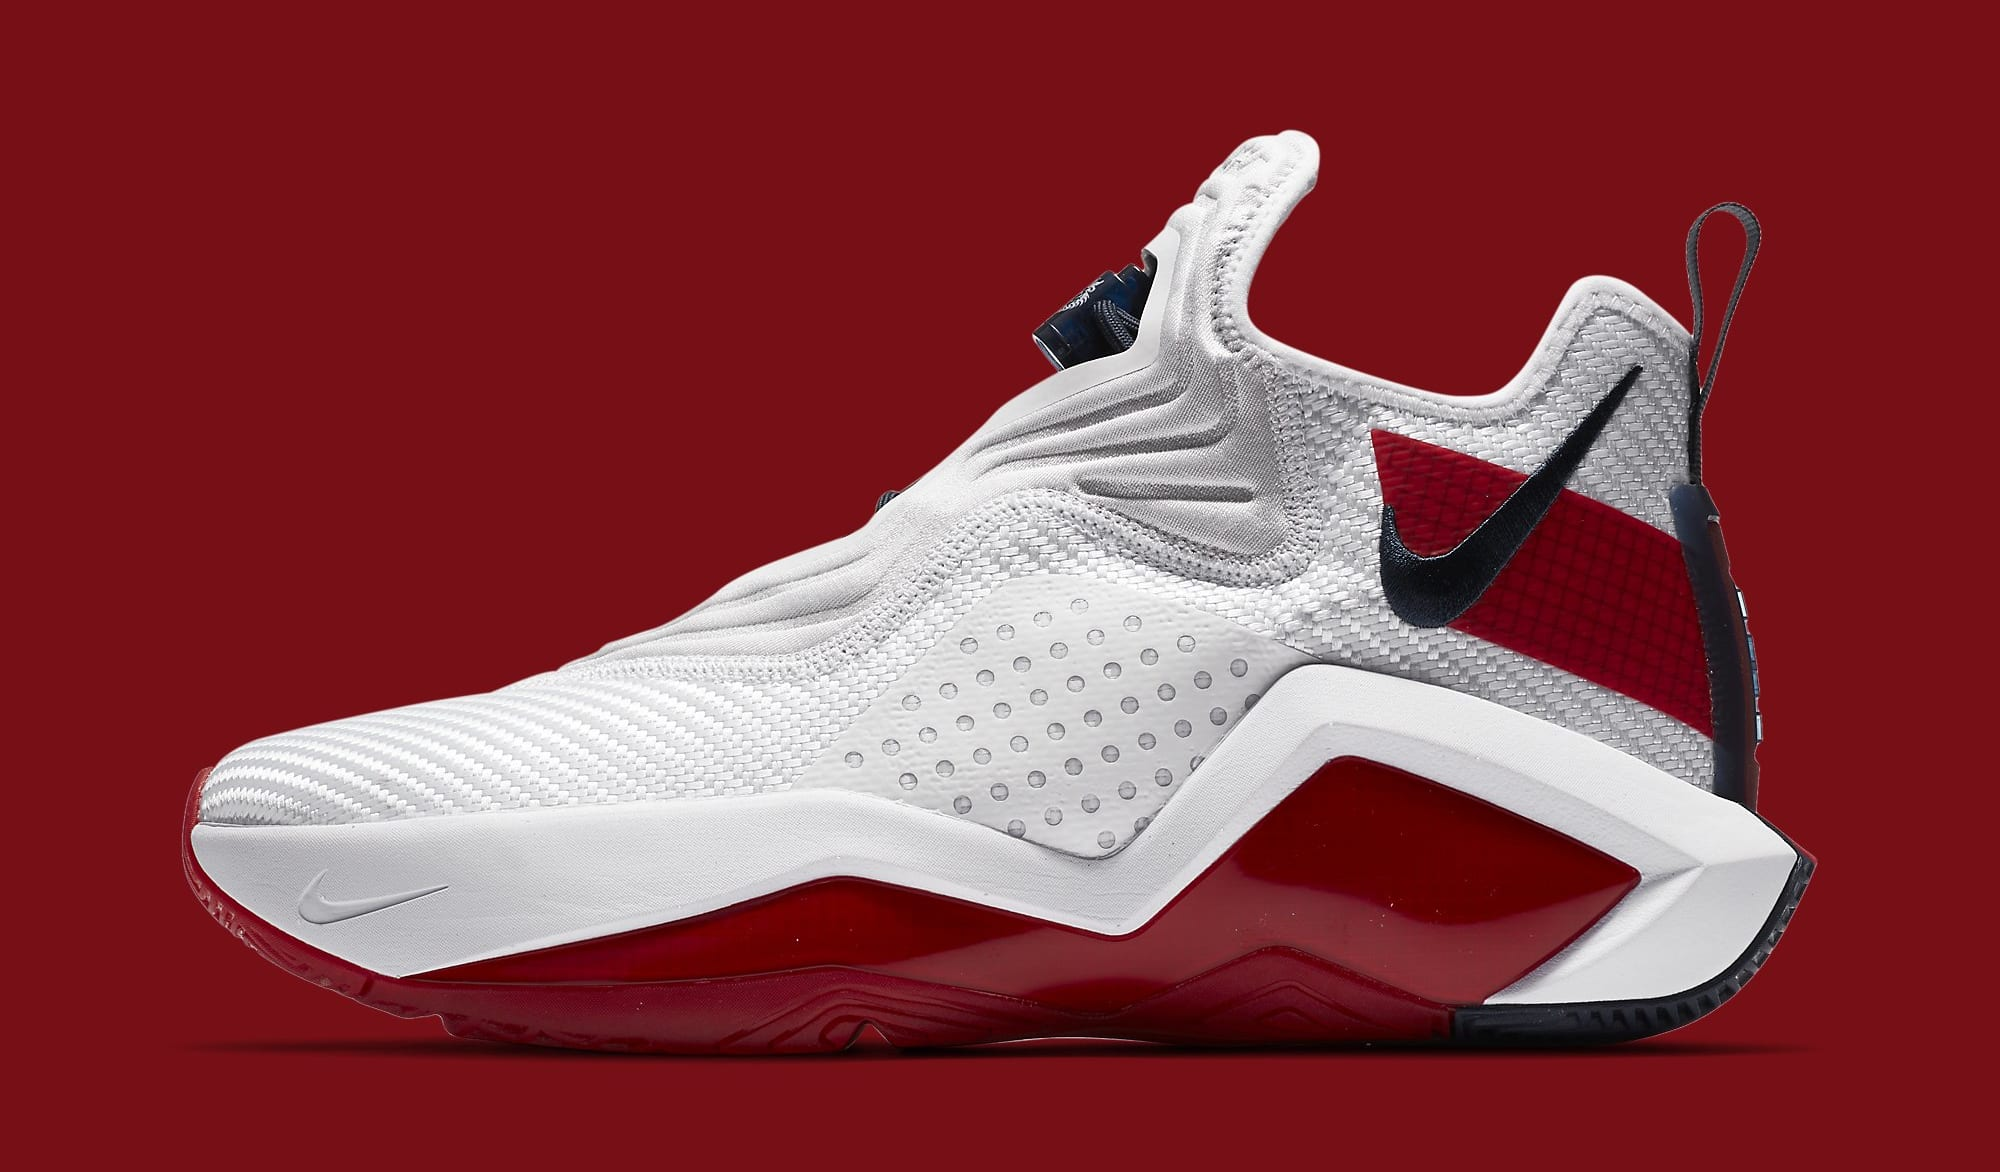 Nike LeBron Soldier 14 White/University Red-Team Red CK6024-100 Lateral